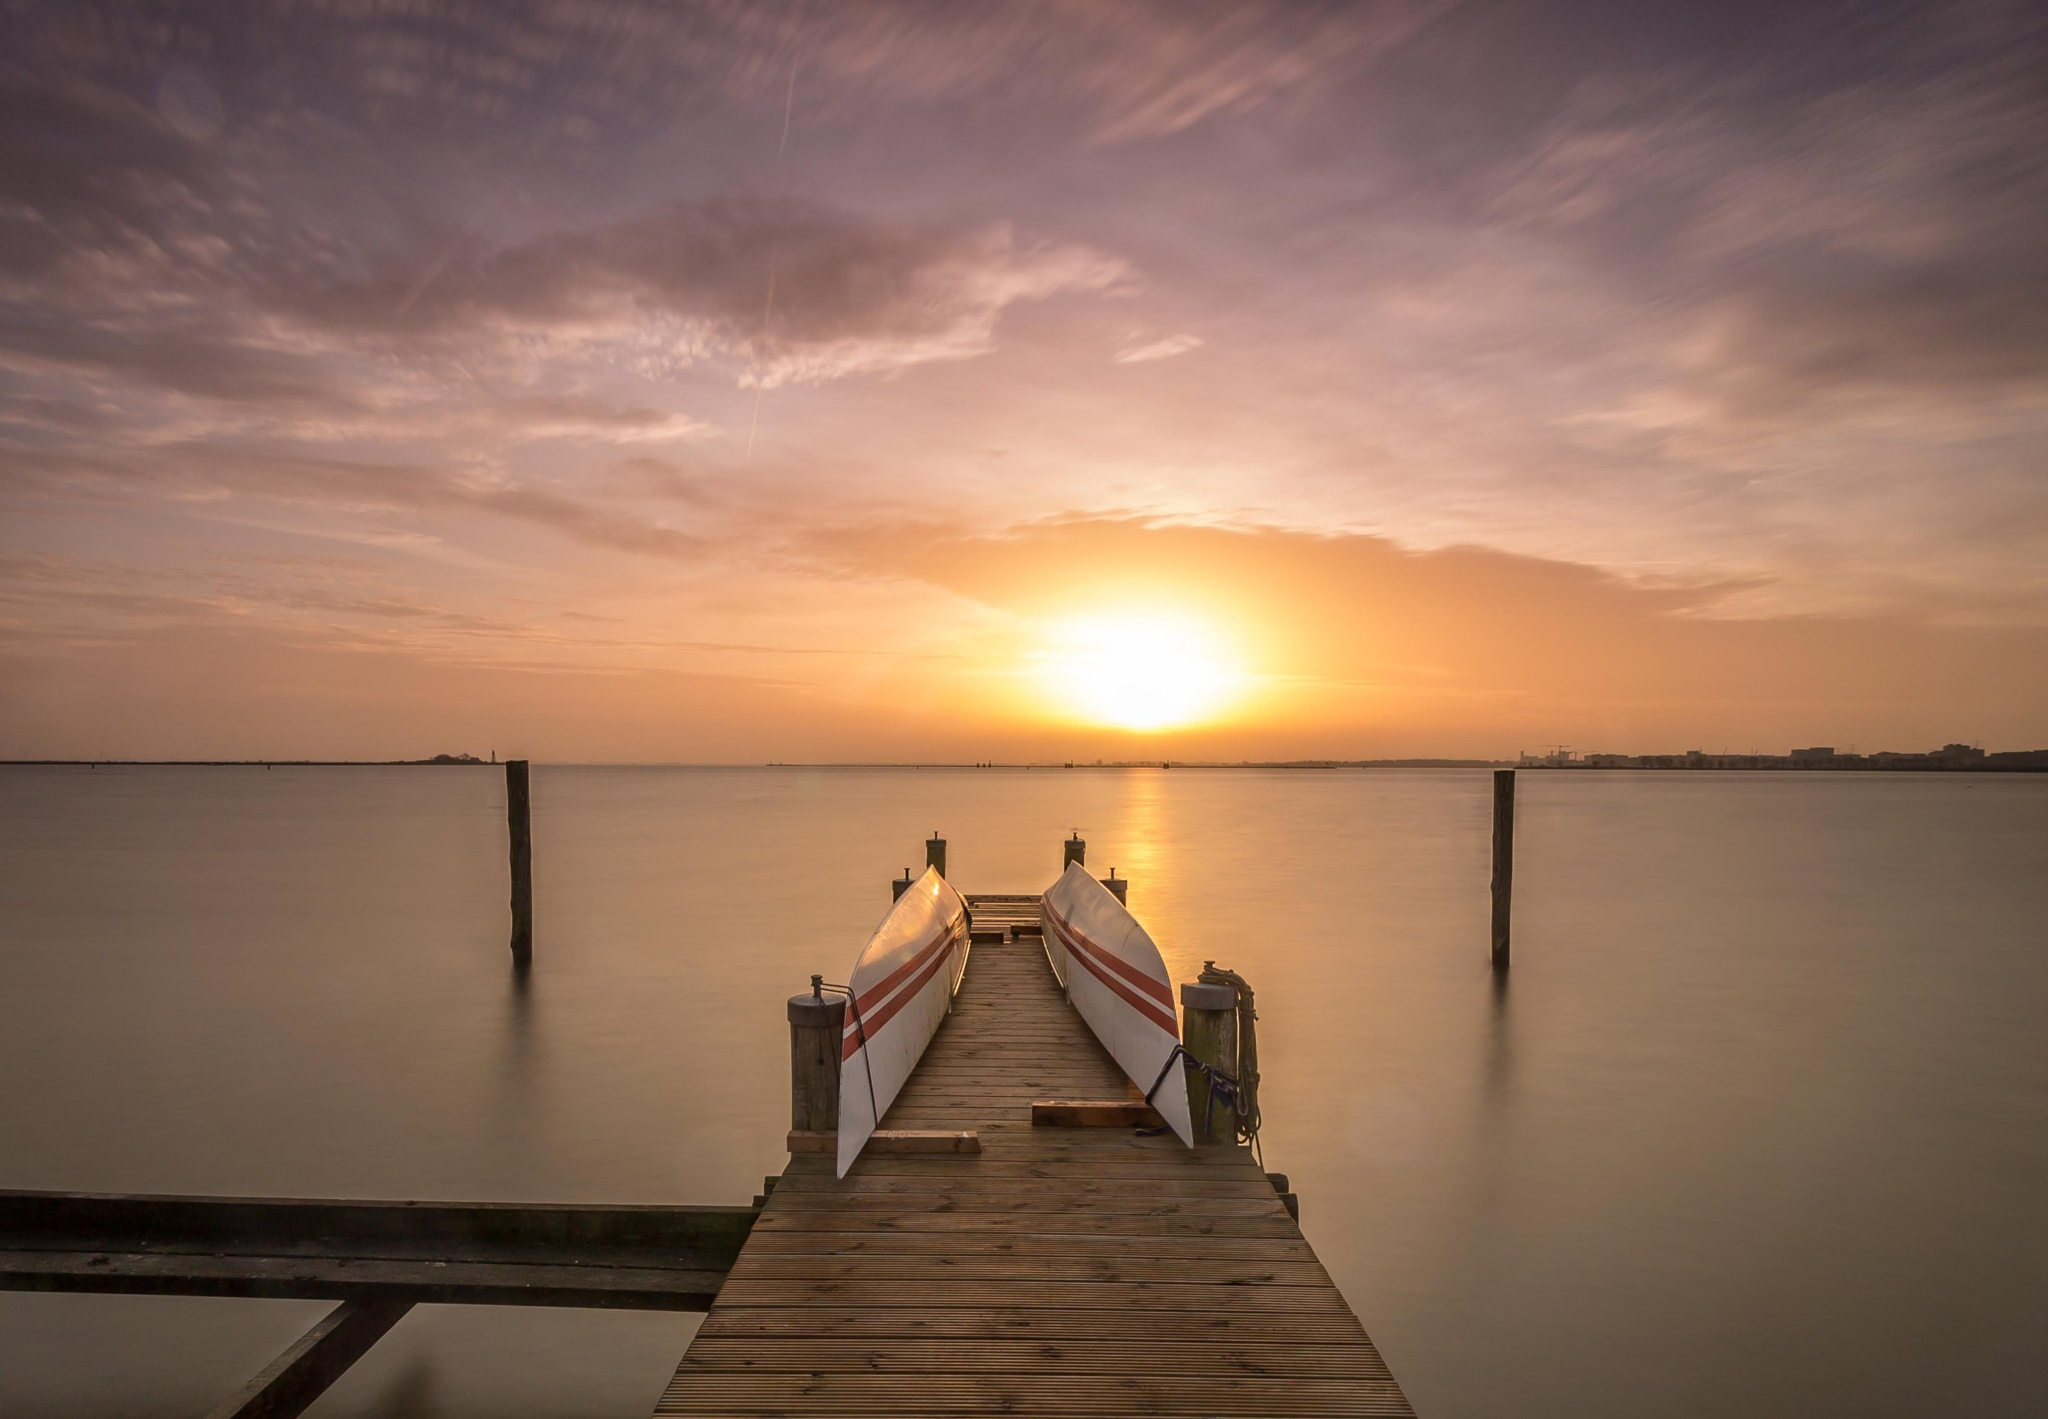 Another jetty at Durgerdam by Stef van Winssen